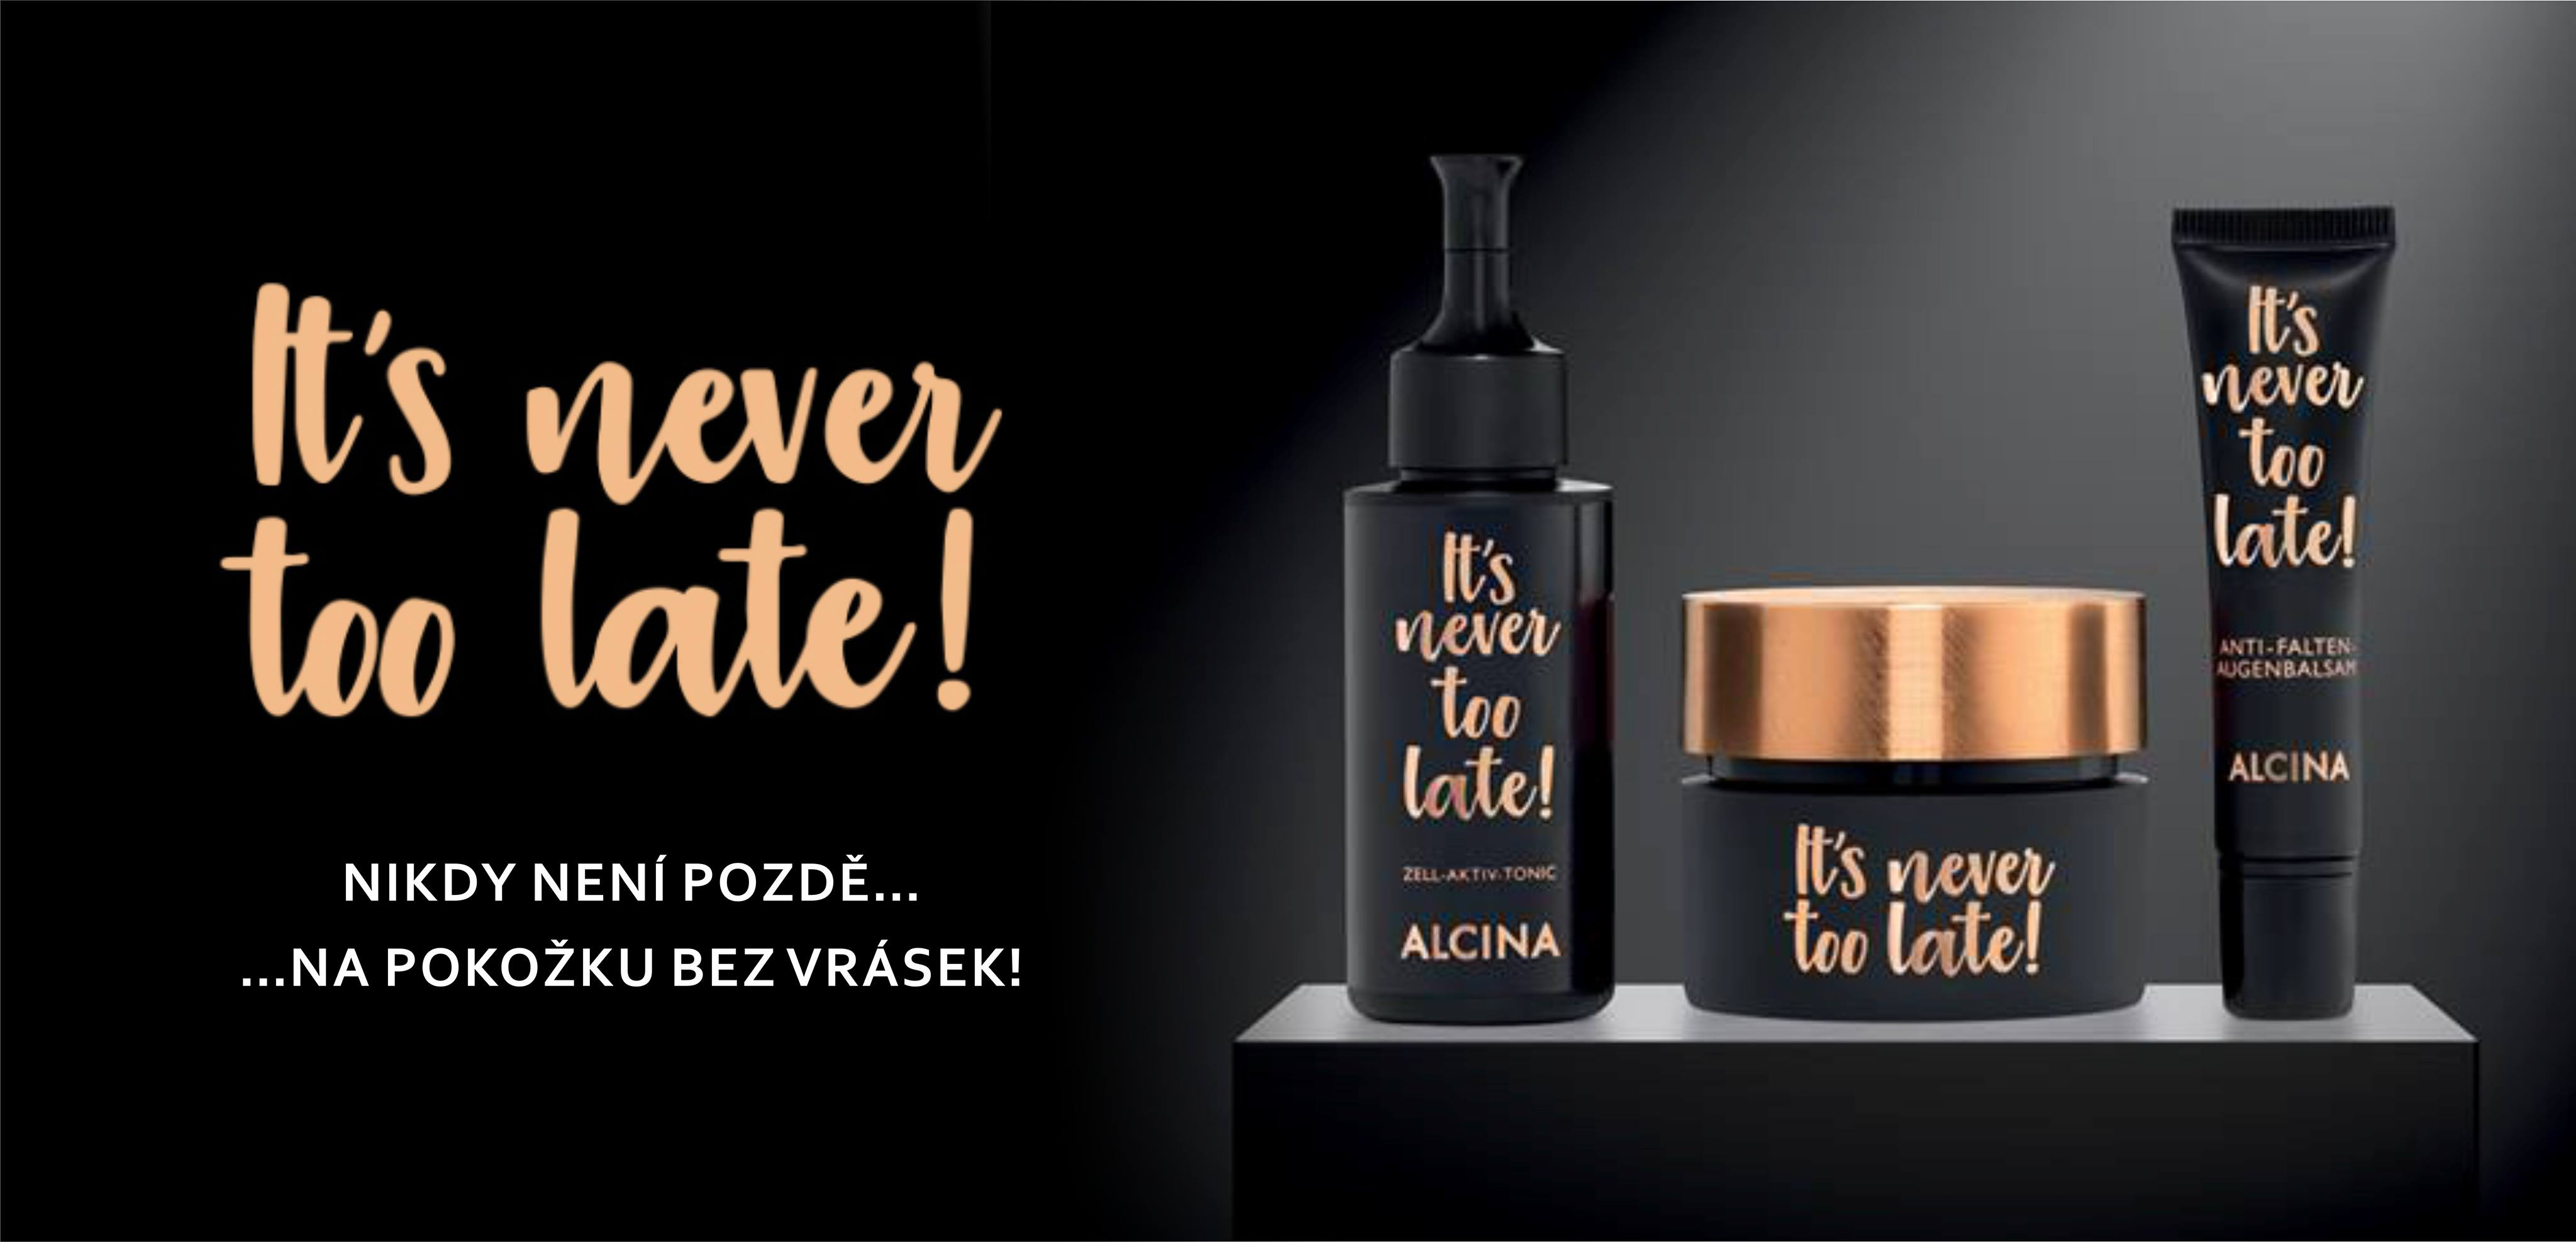 Alcina It´s never too late!